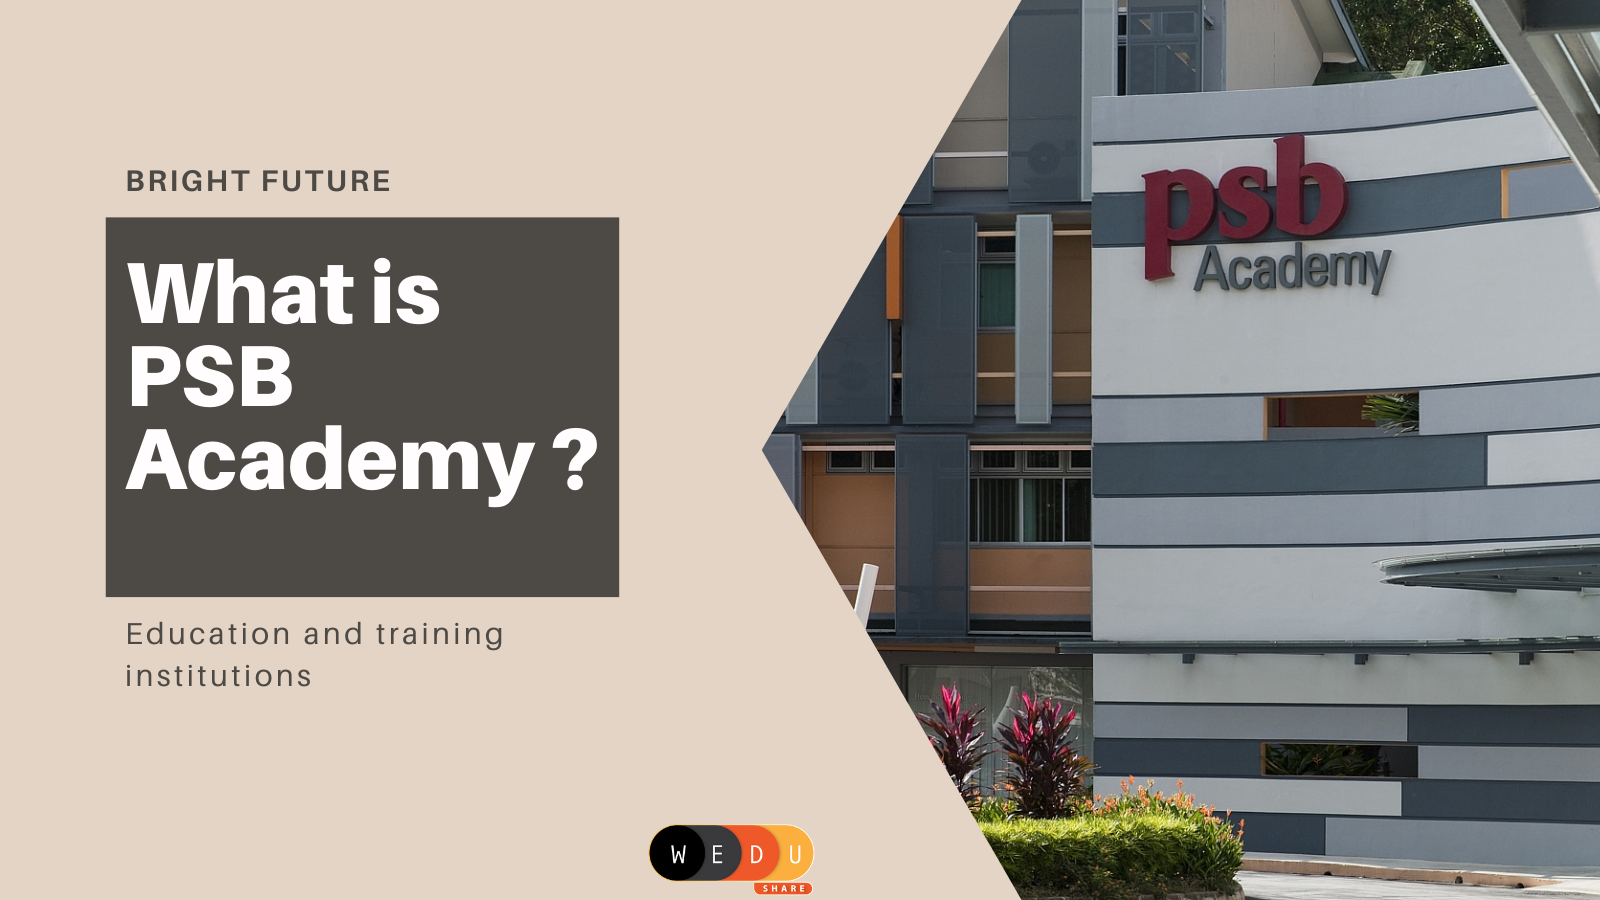 What is PSB Academy?